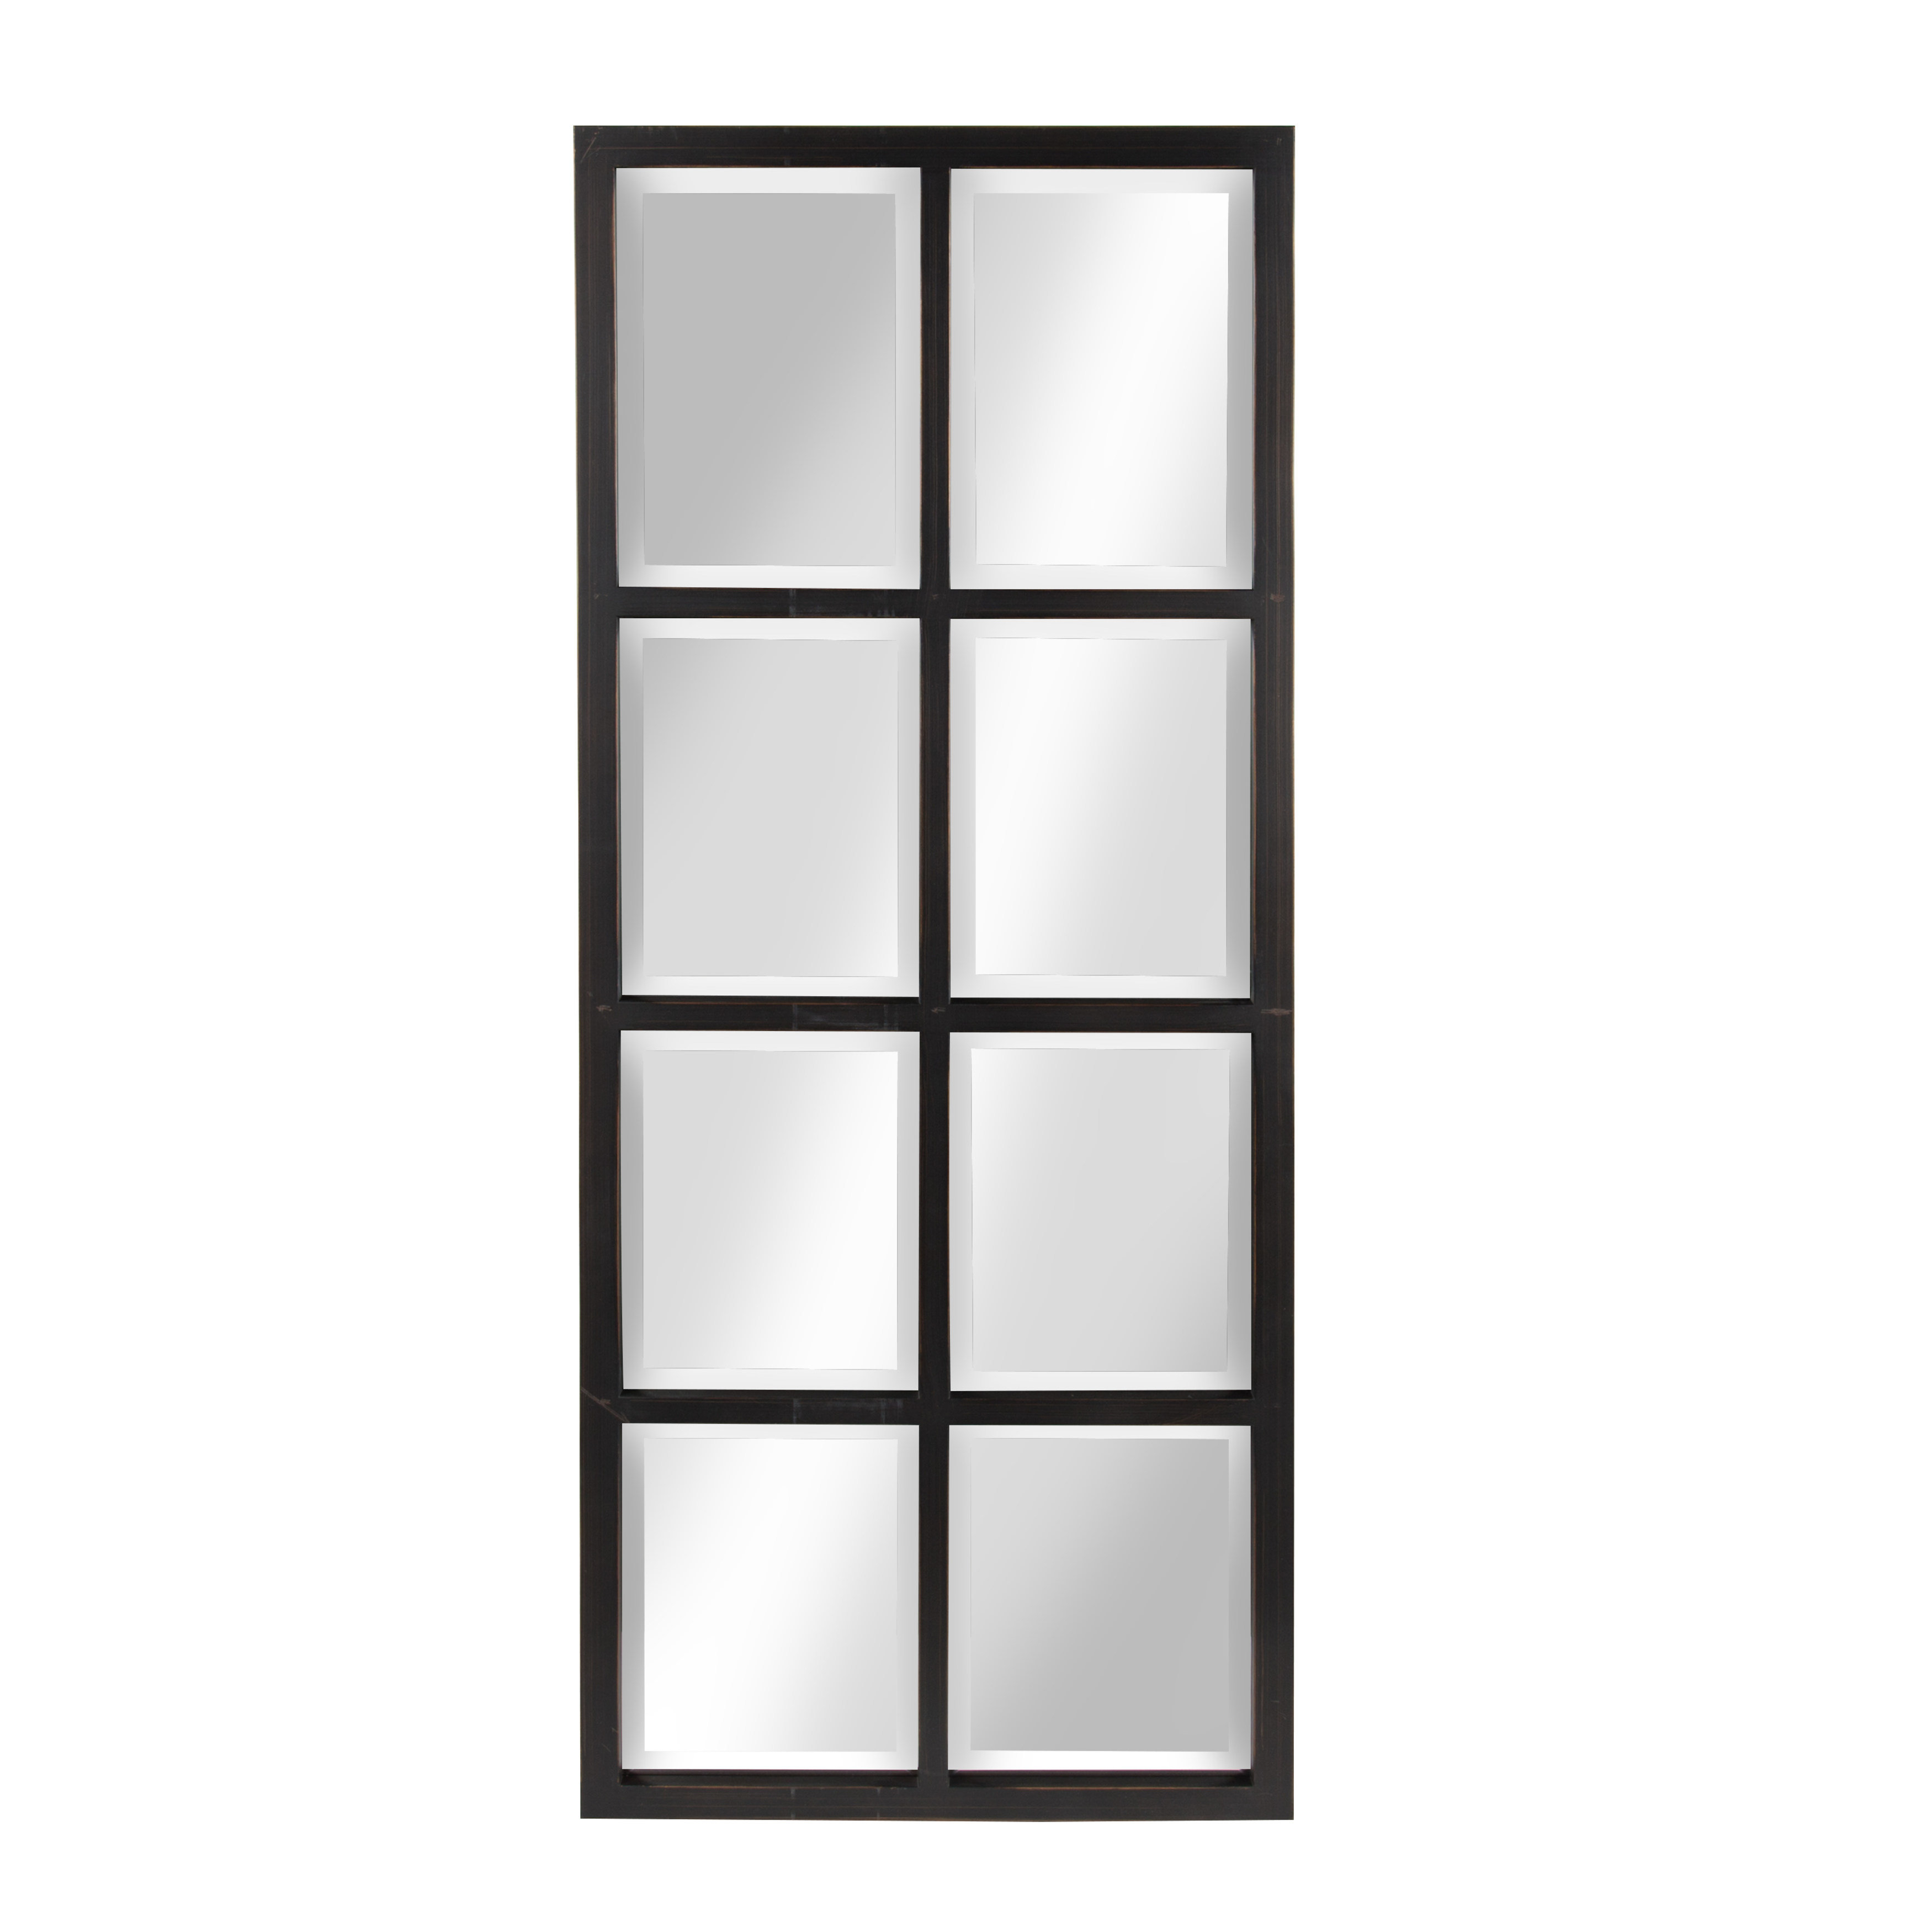 Swanley Modern & Contemporary Beveled Accent Mirror In Modern & Contemporary Beveled Accent Mirrors (View 29 of 30)